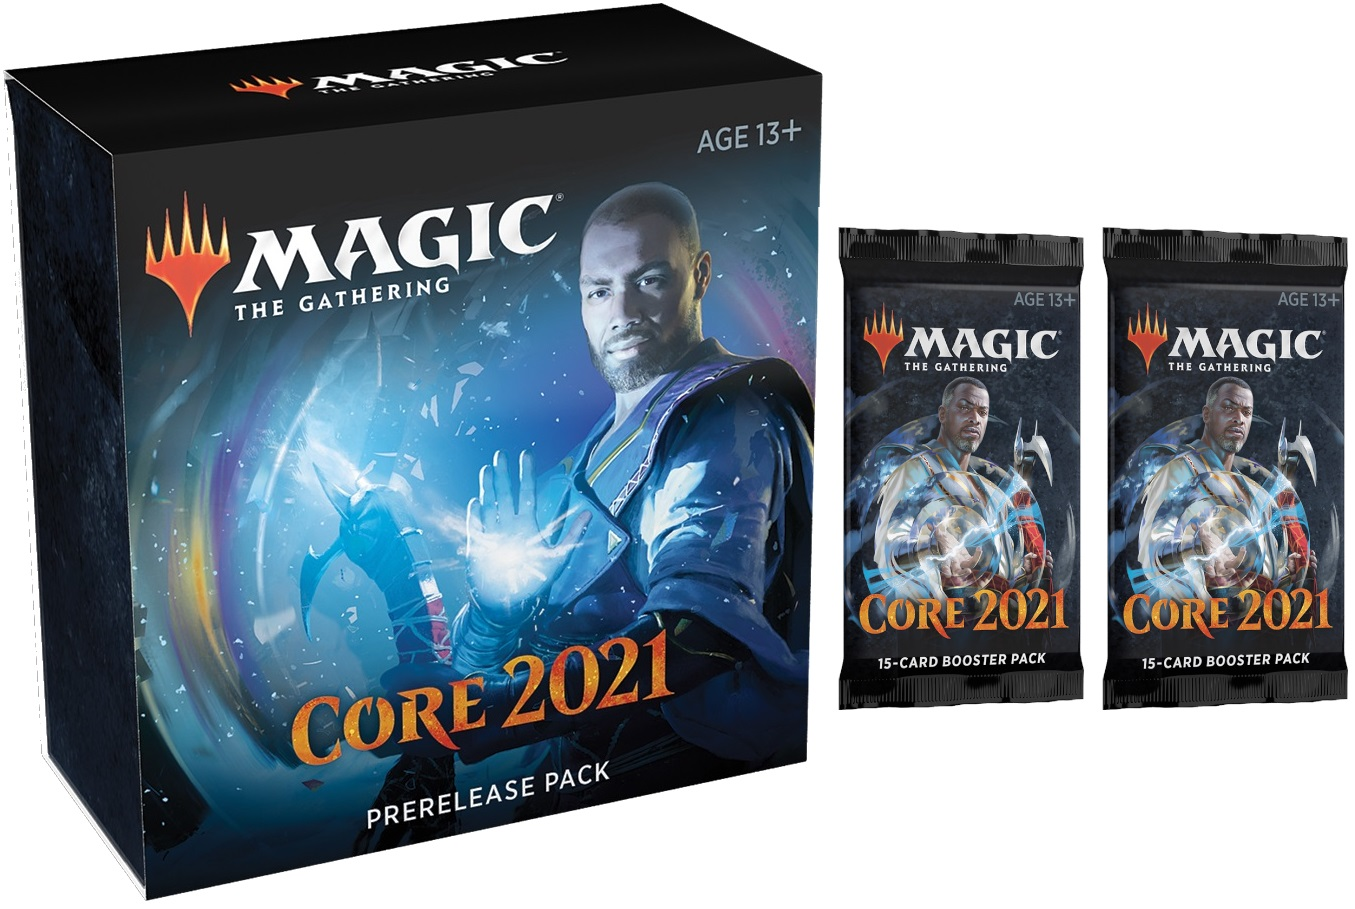 Core Set 2021 Prerelease Pack + 2 Core Set 2021 Prize Boosters